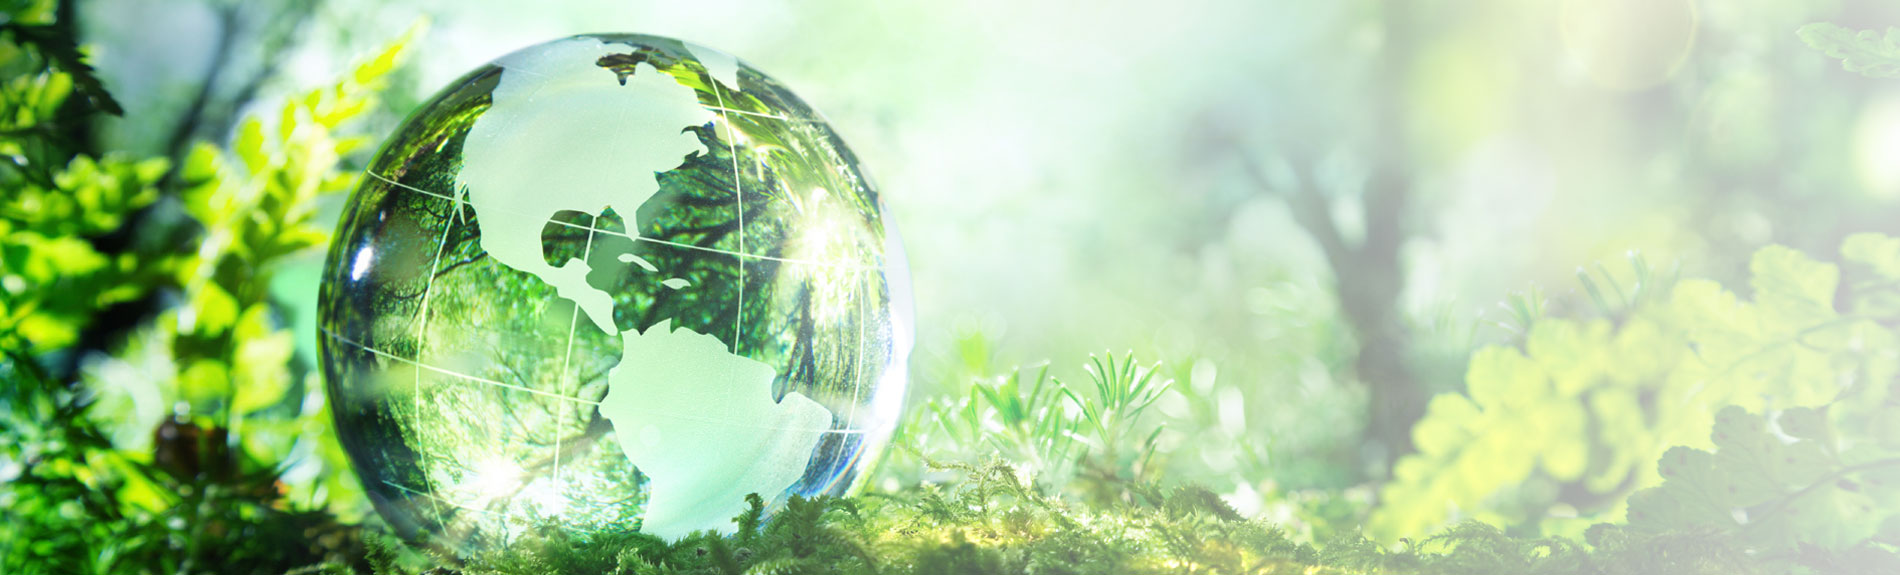 glass globe of the earth against foilage